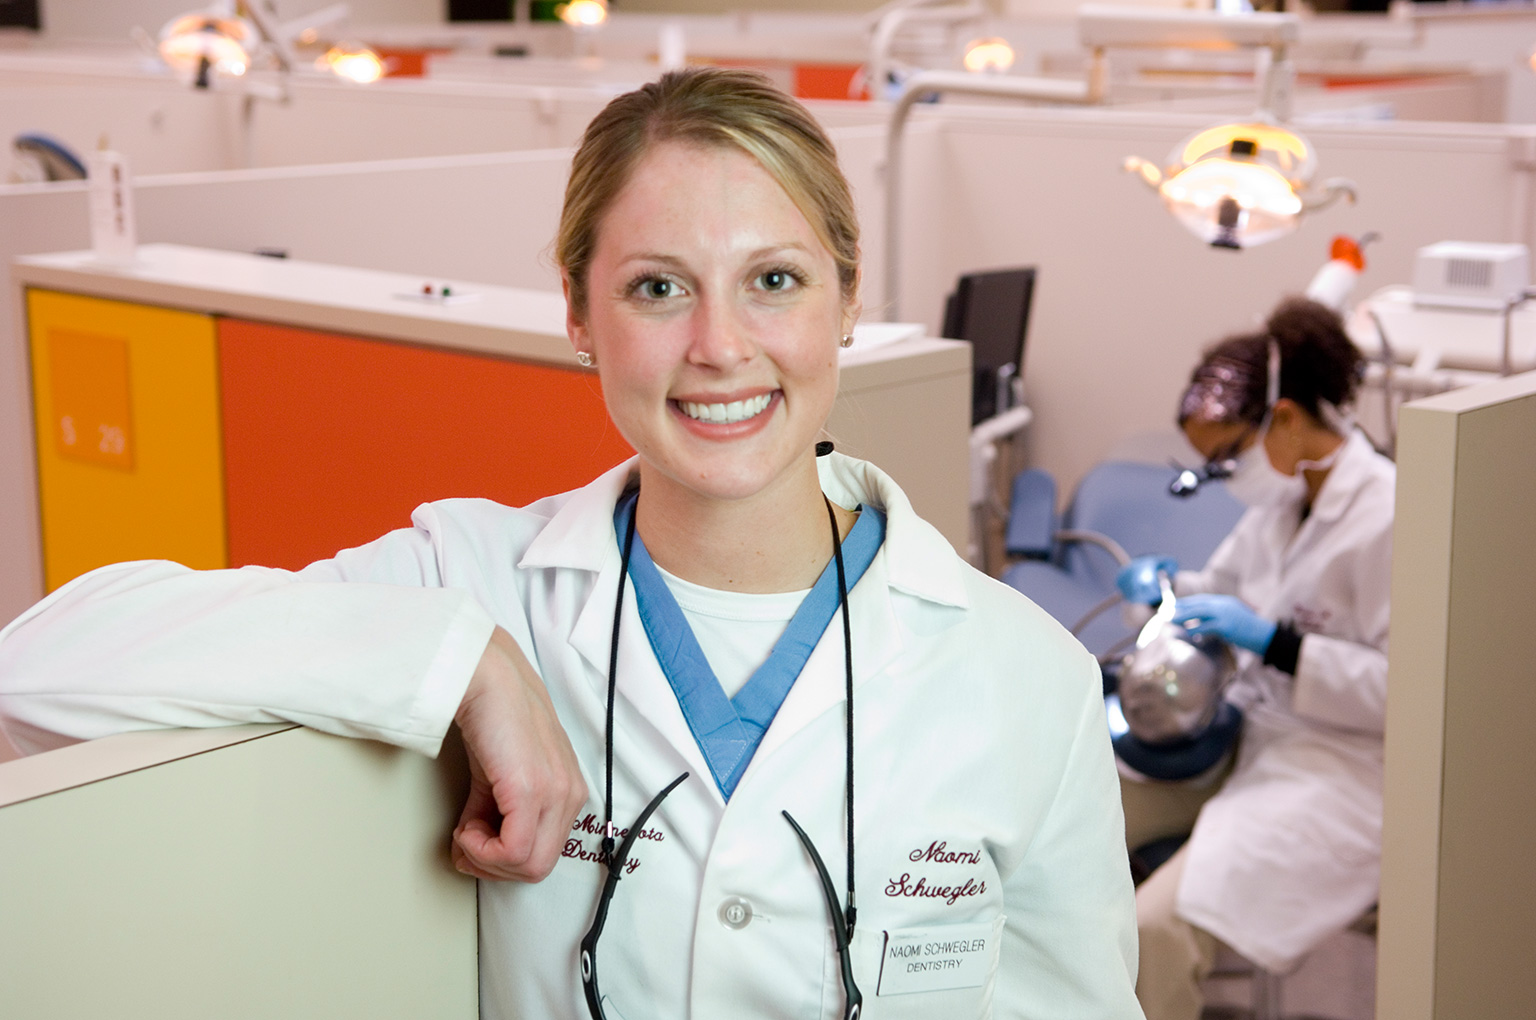 University of Minnesota School of Dentistry student posing for a photo in the dental clinic